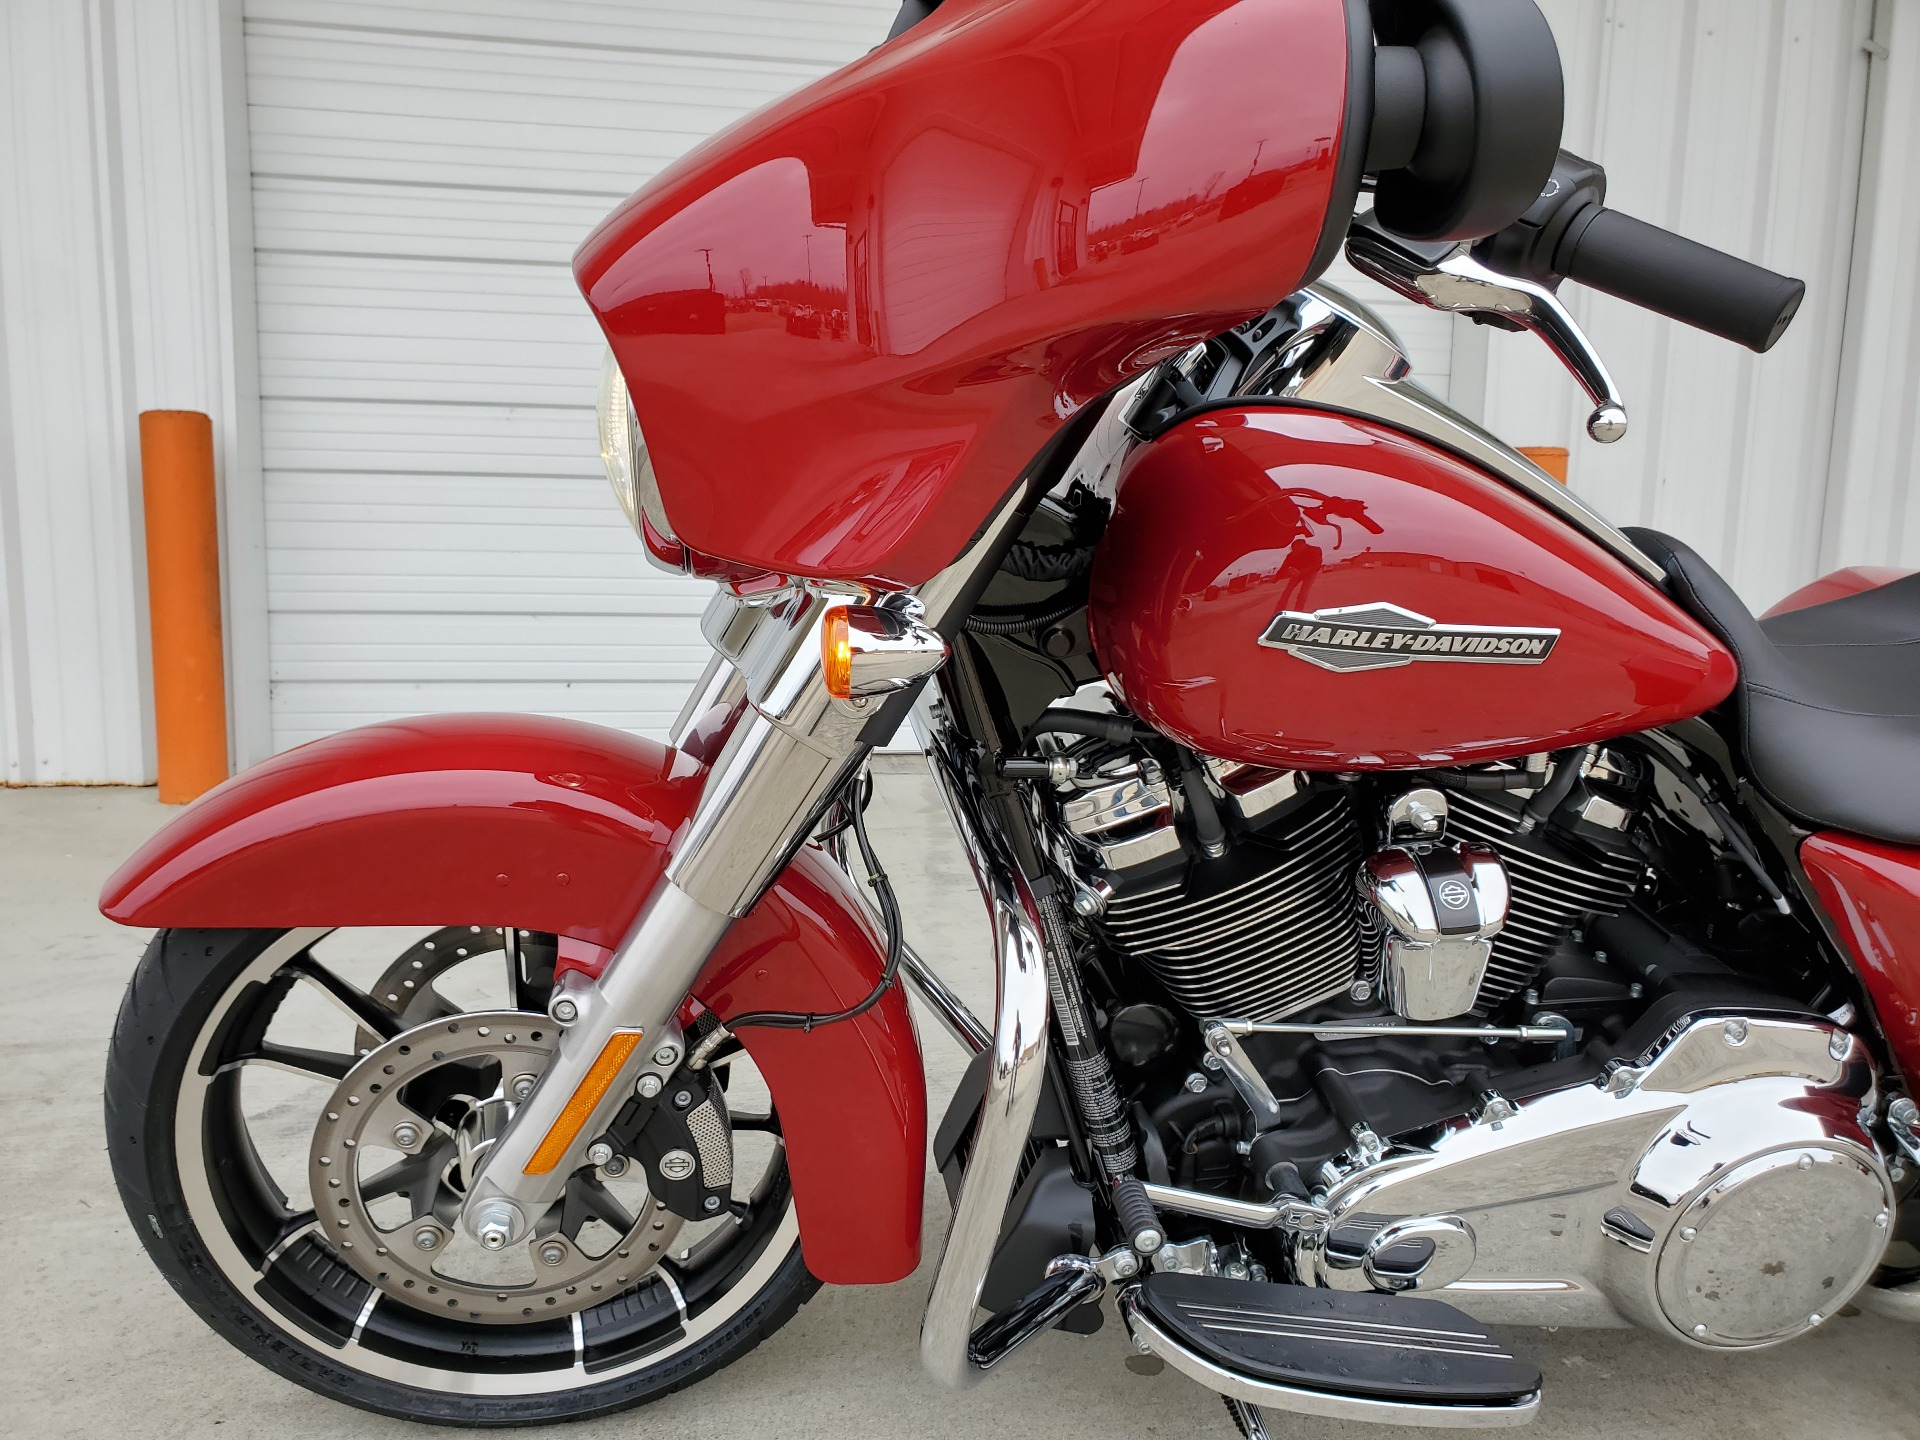 2021 Harley Street Glide for sale - Photo 6